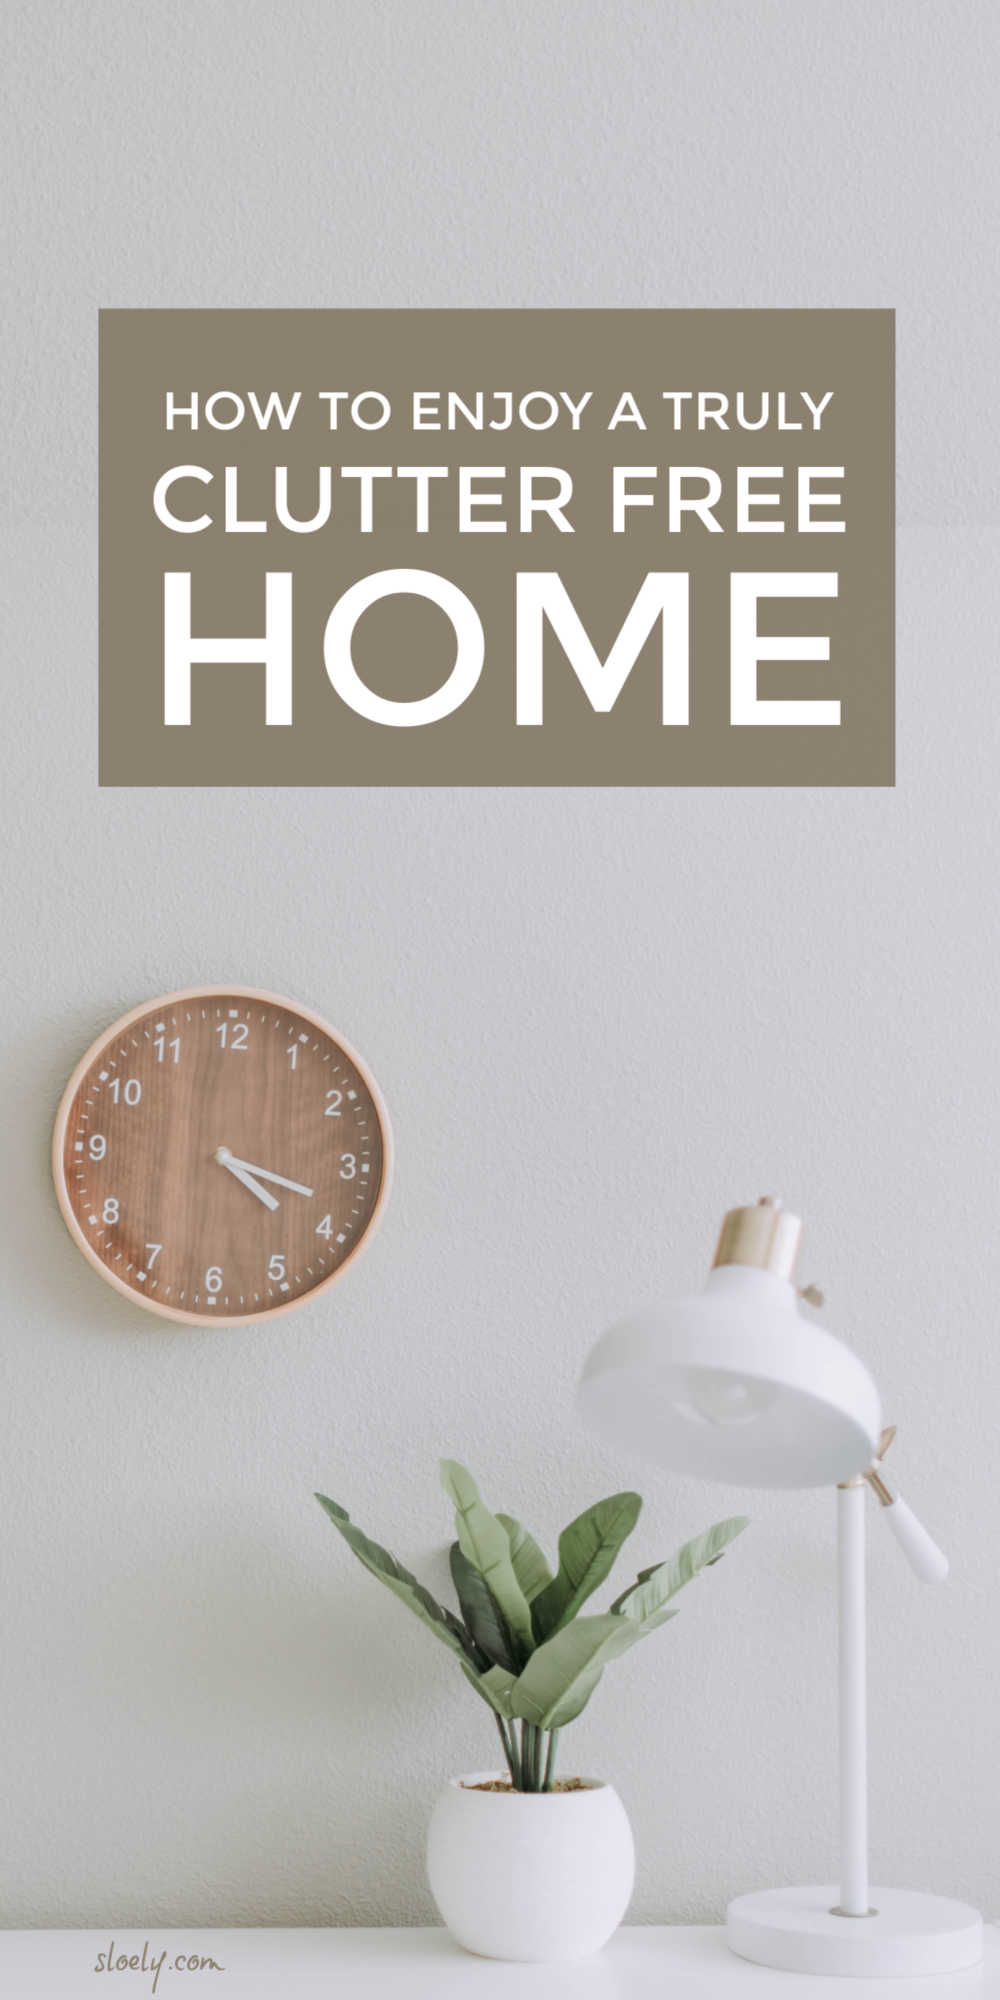 Simple Rules For A Clutter Free Home